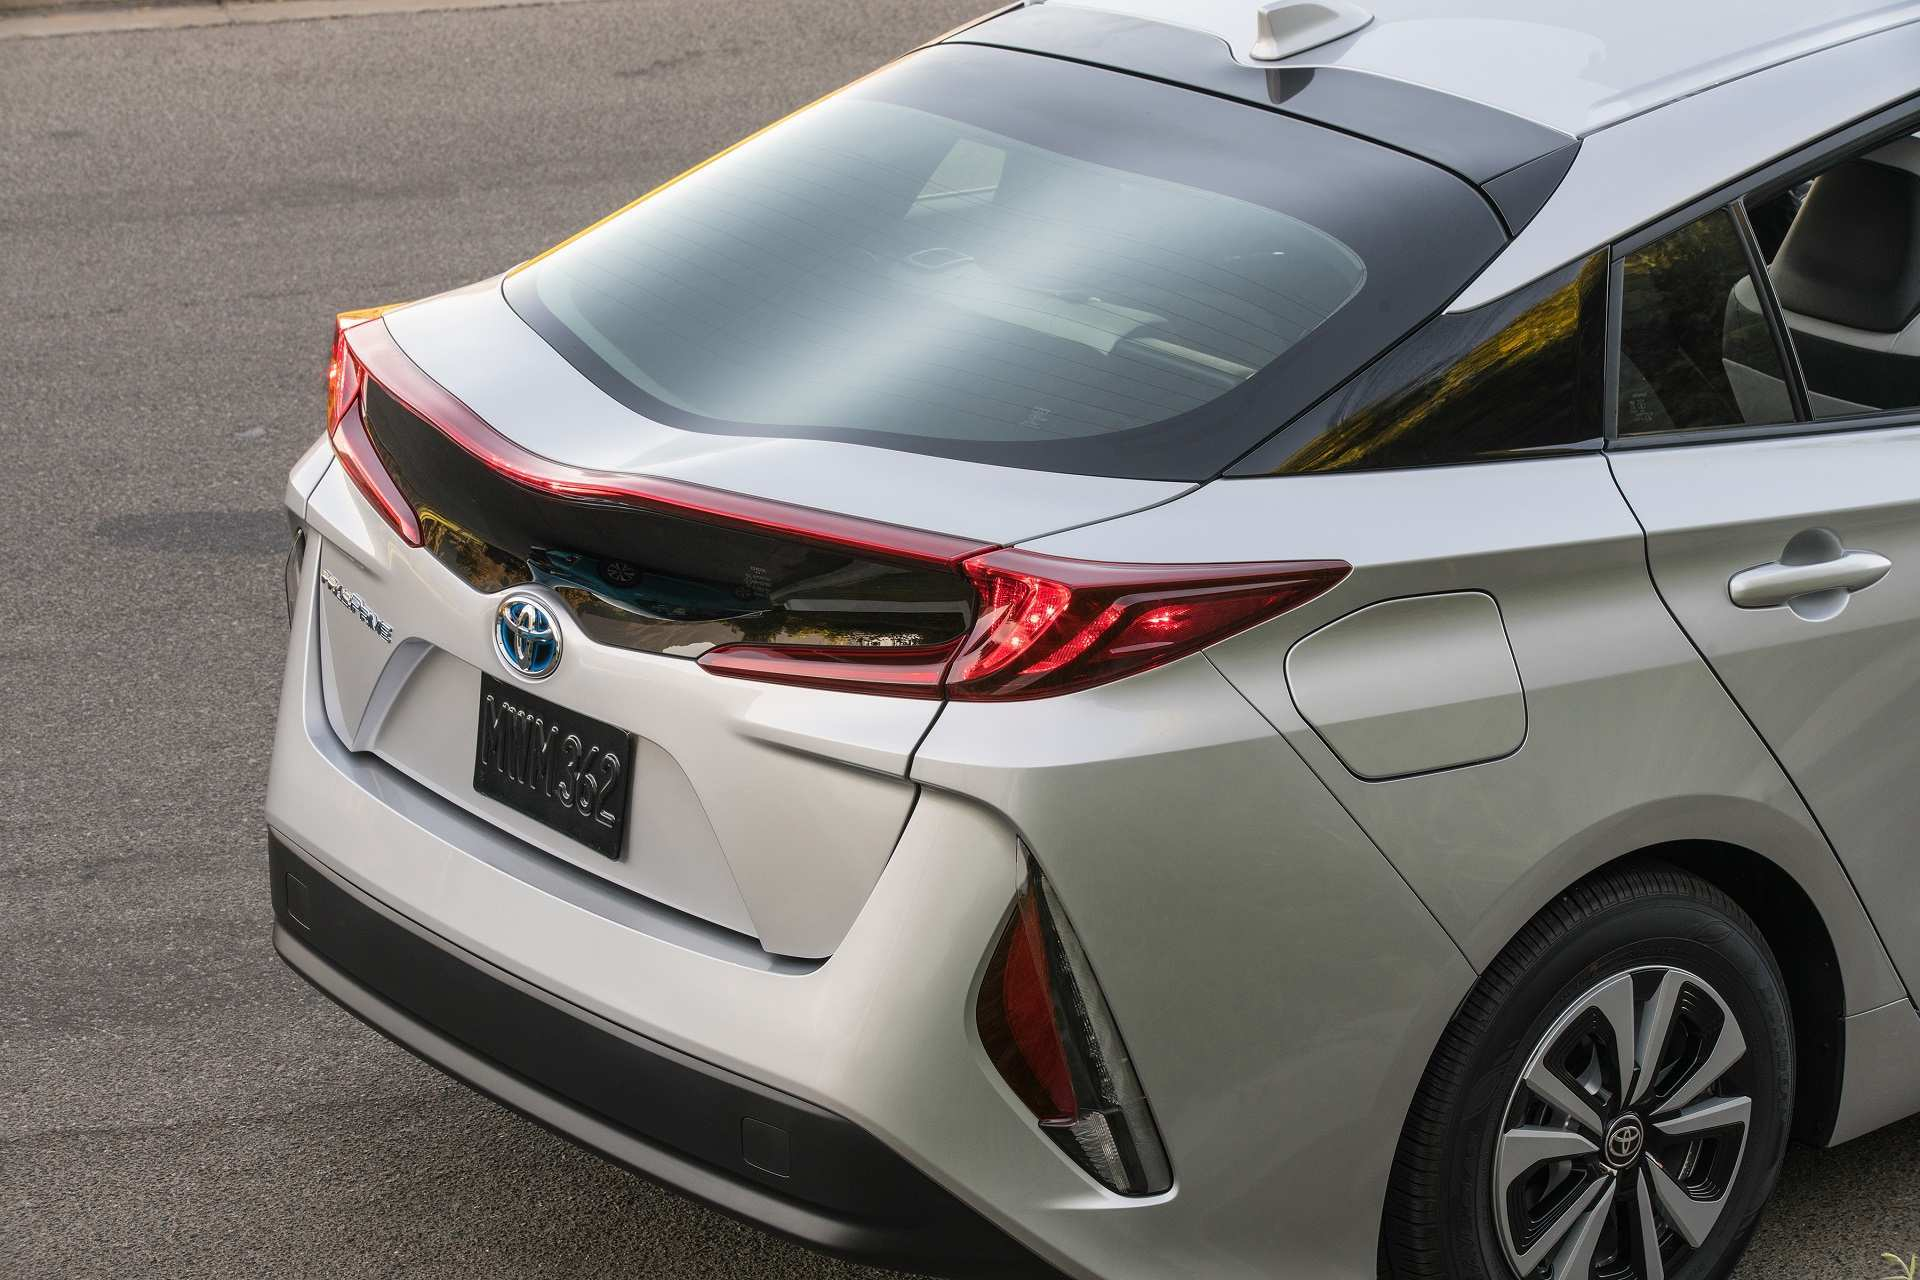 73 The Toyota Electric Car 2020 Rumors